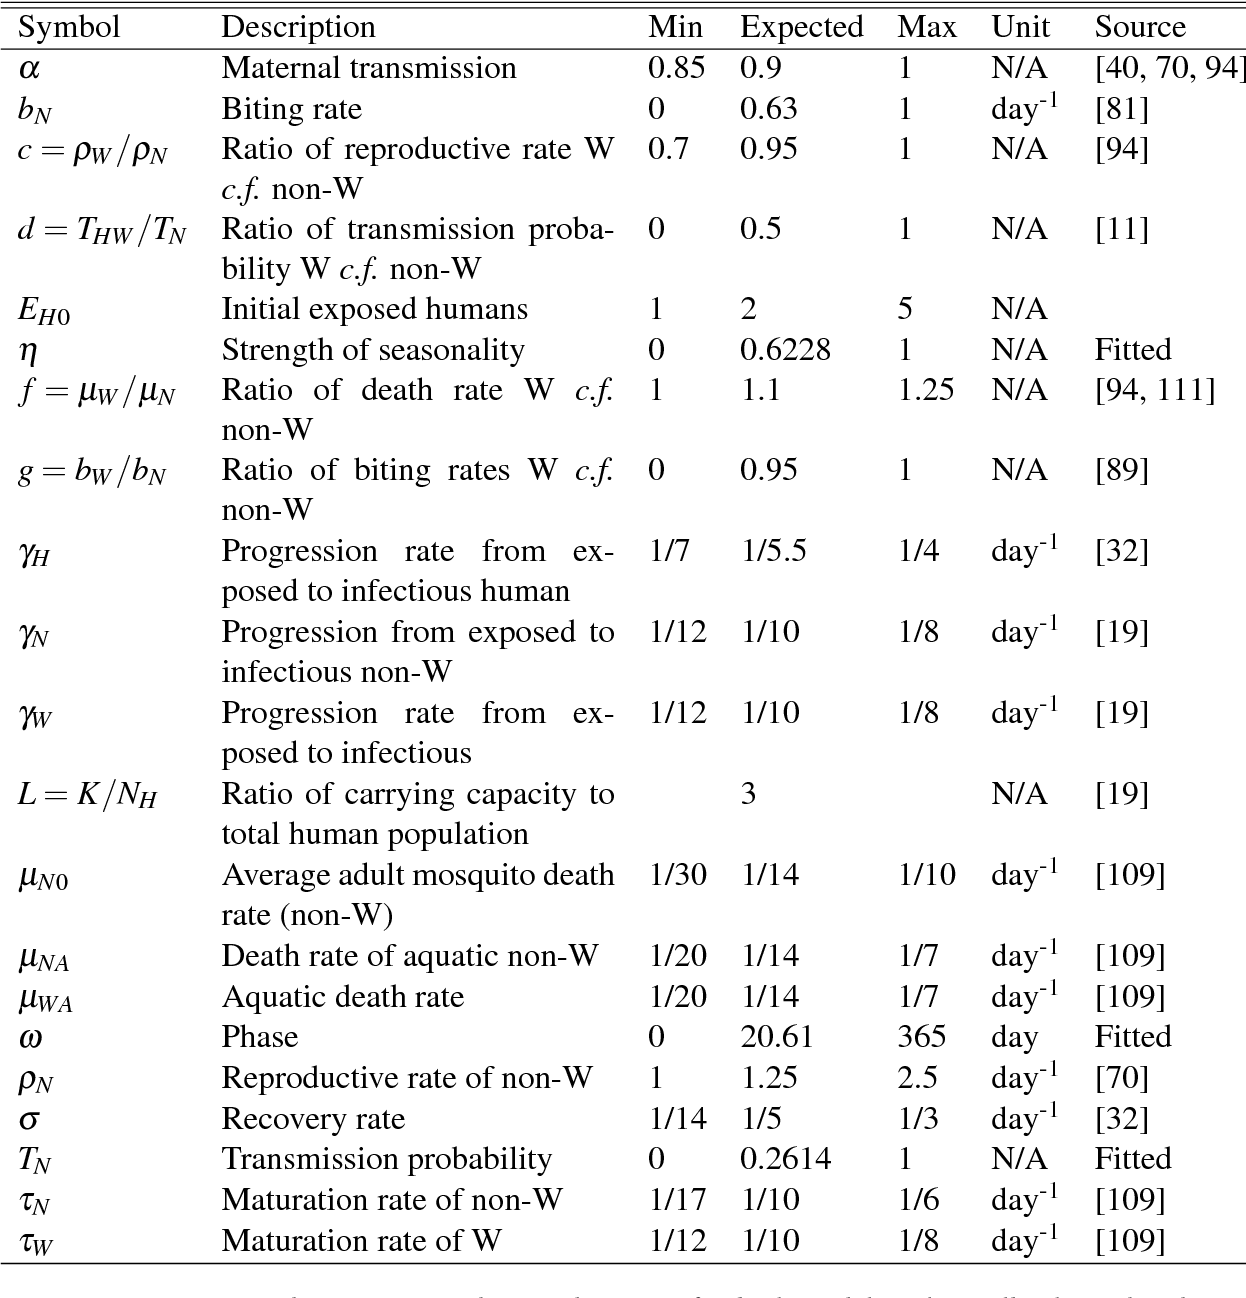 "Table 4.1: Parameter descriptions, values and sources for both models. The Wolbachia-related parameters are for the WMel strain. Here ""Non-W"" refers to non-Wolbachia mosquitoes and ""W"" refers to Wolbachia-carrying mosquitoes. Further explanation of the parameter values is given in the text."